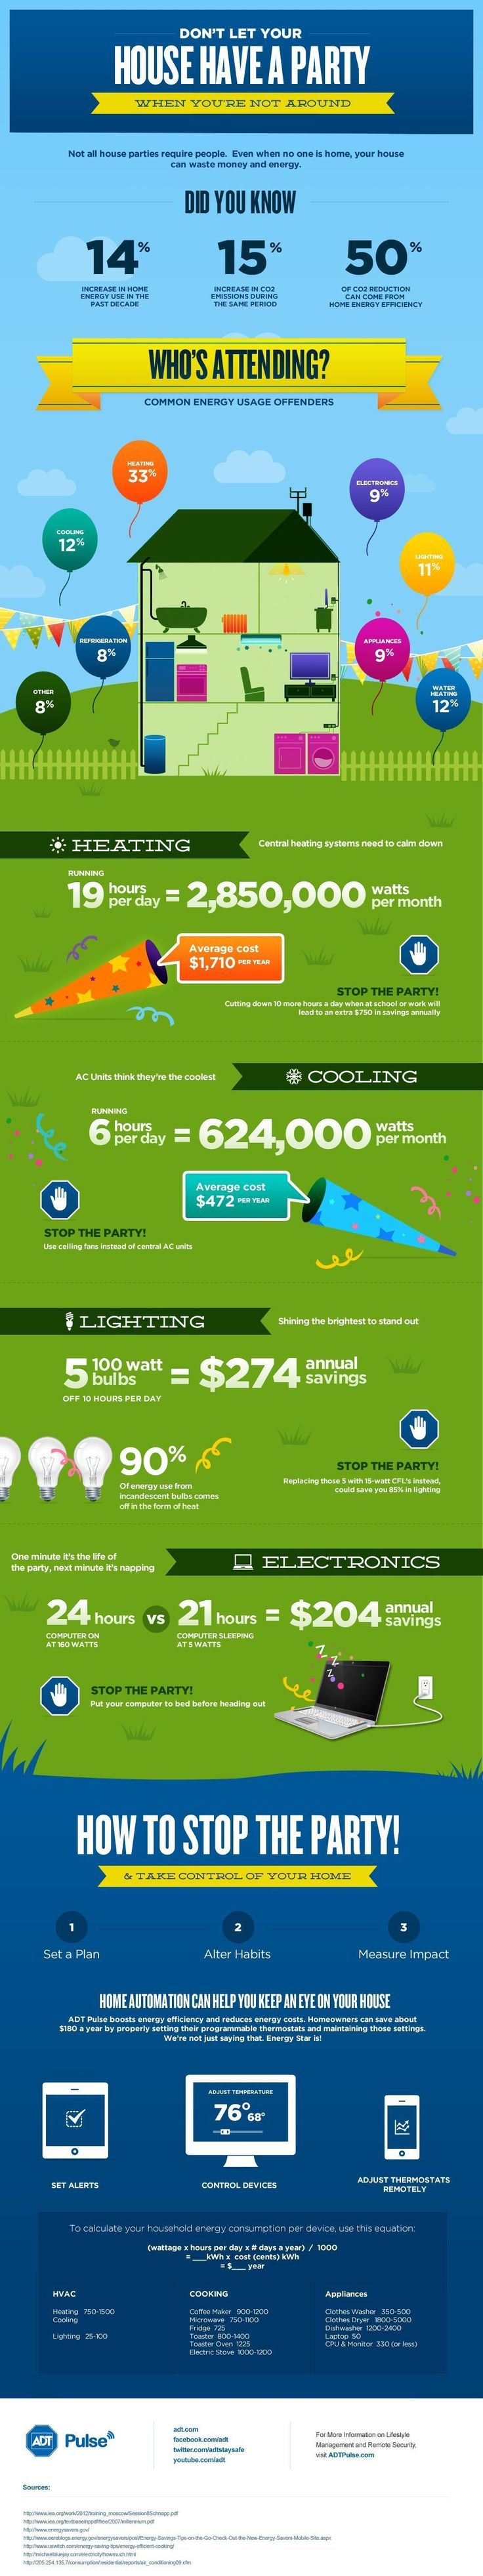 the best energy conservation ideas save  home energy conservation and efficiency tips infographic we ve done the math and compiled ways to help keep an eye on your house and more money in your